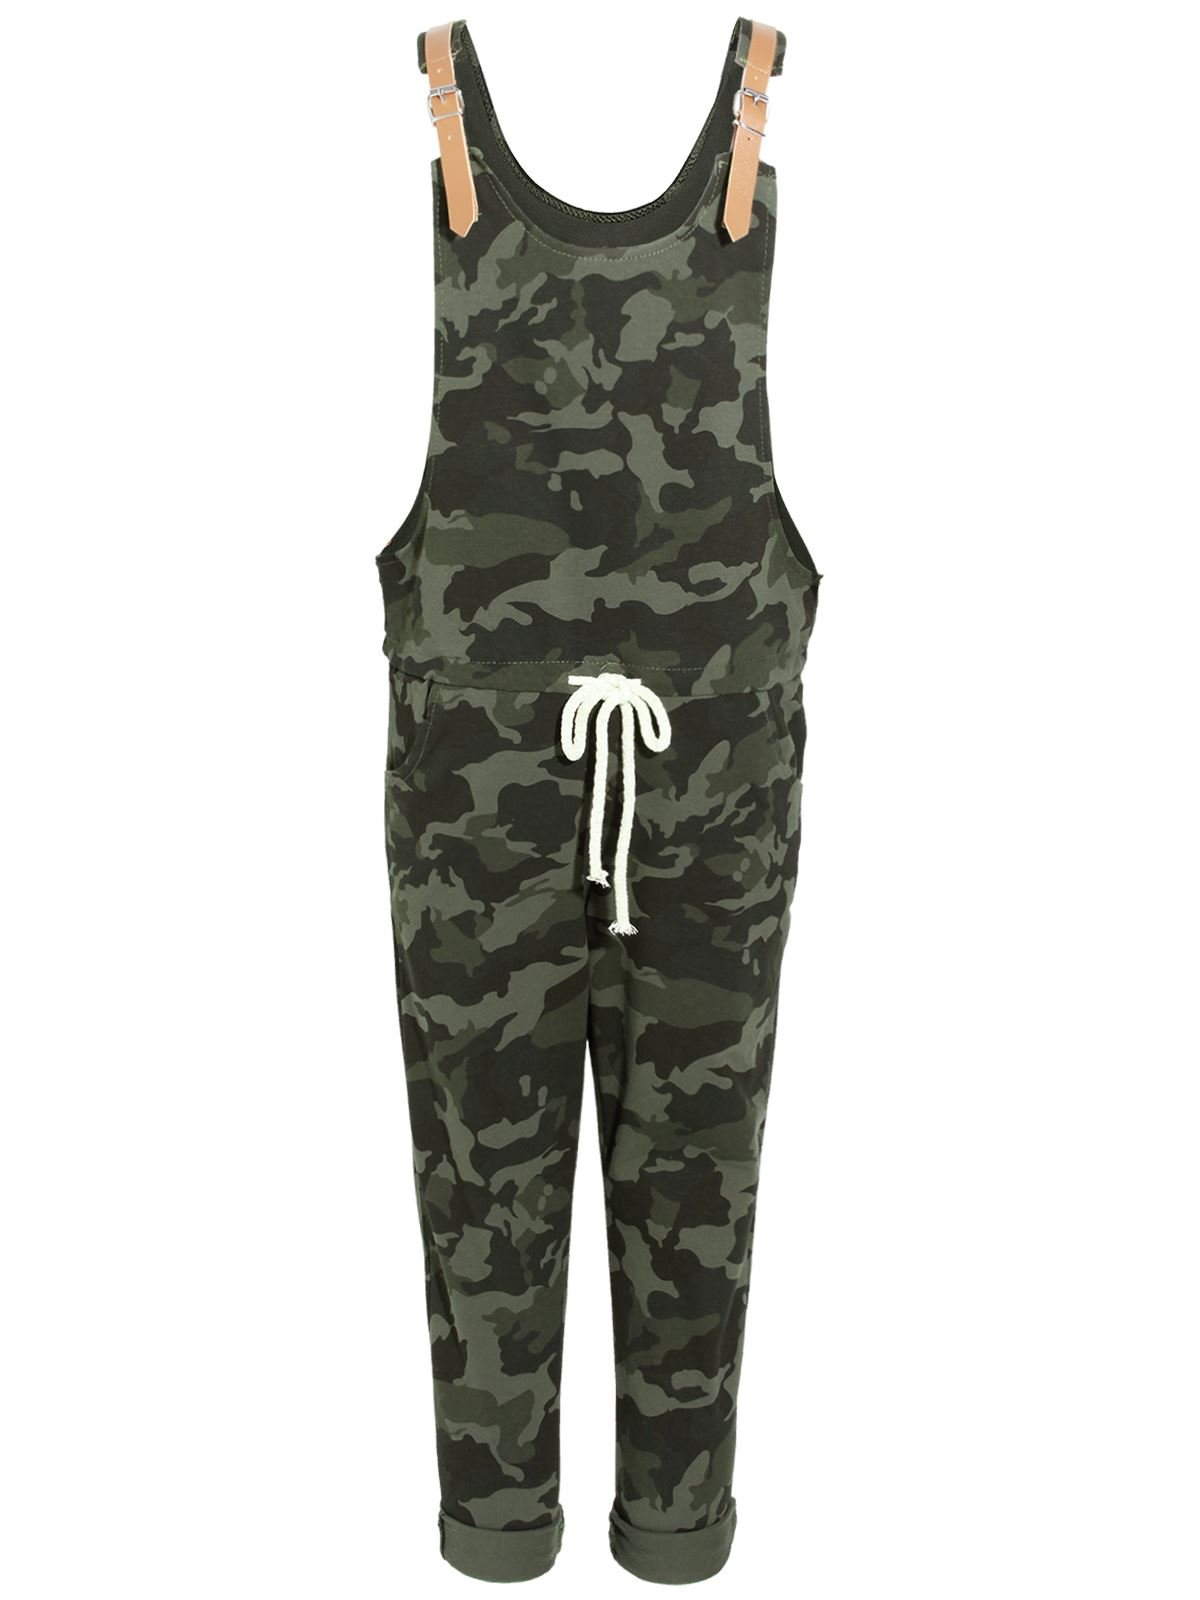 Model Womens Camouflage Jumpsuit Ladies Dungaree Camo Loungewear 34 Pants